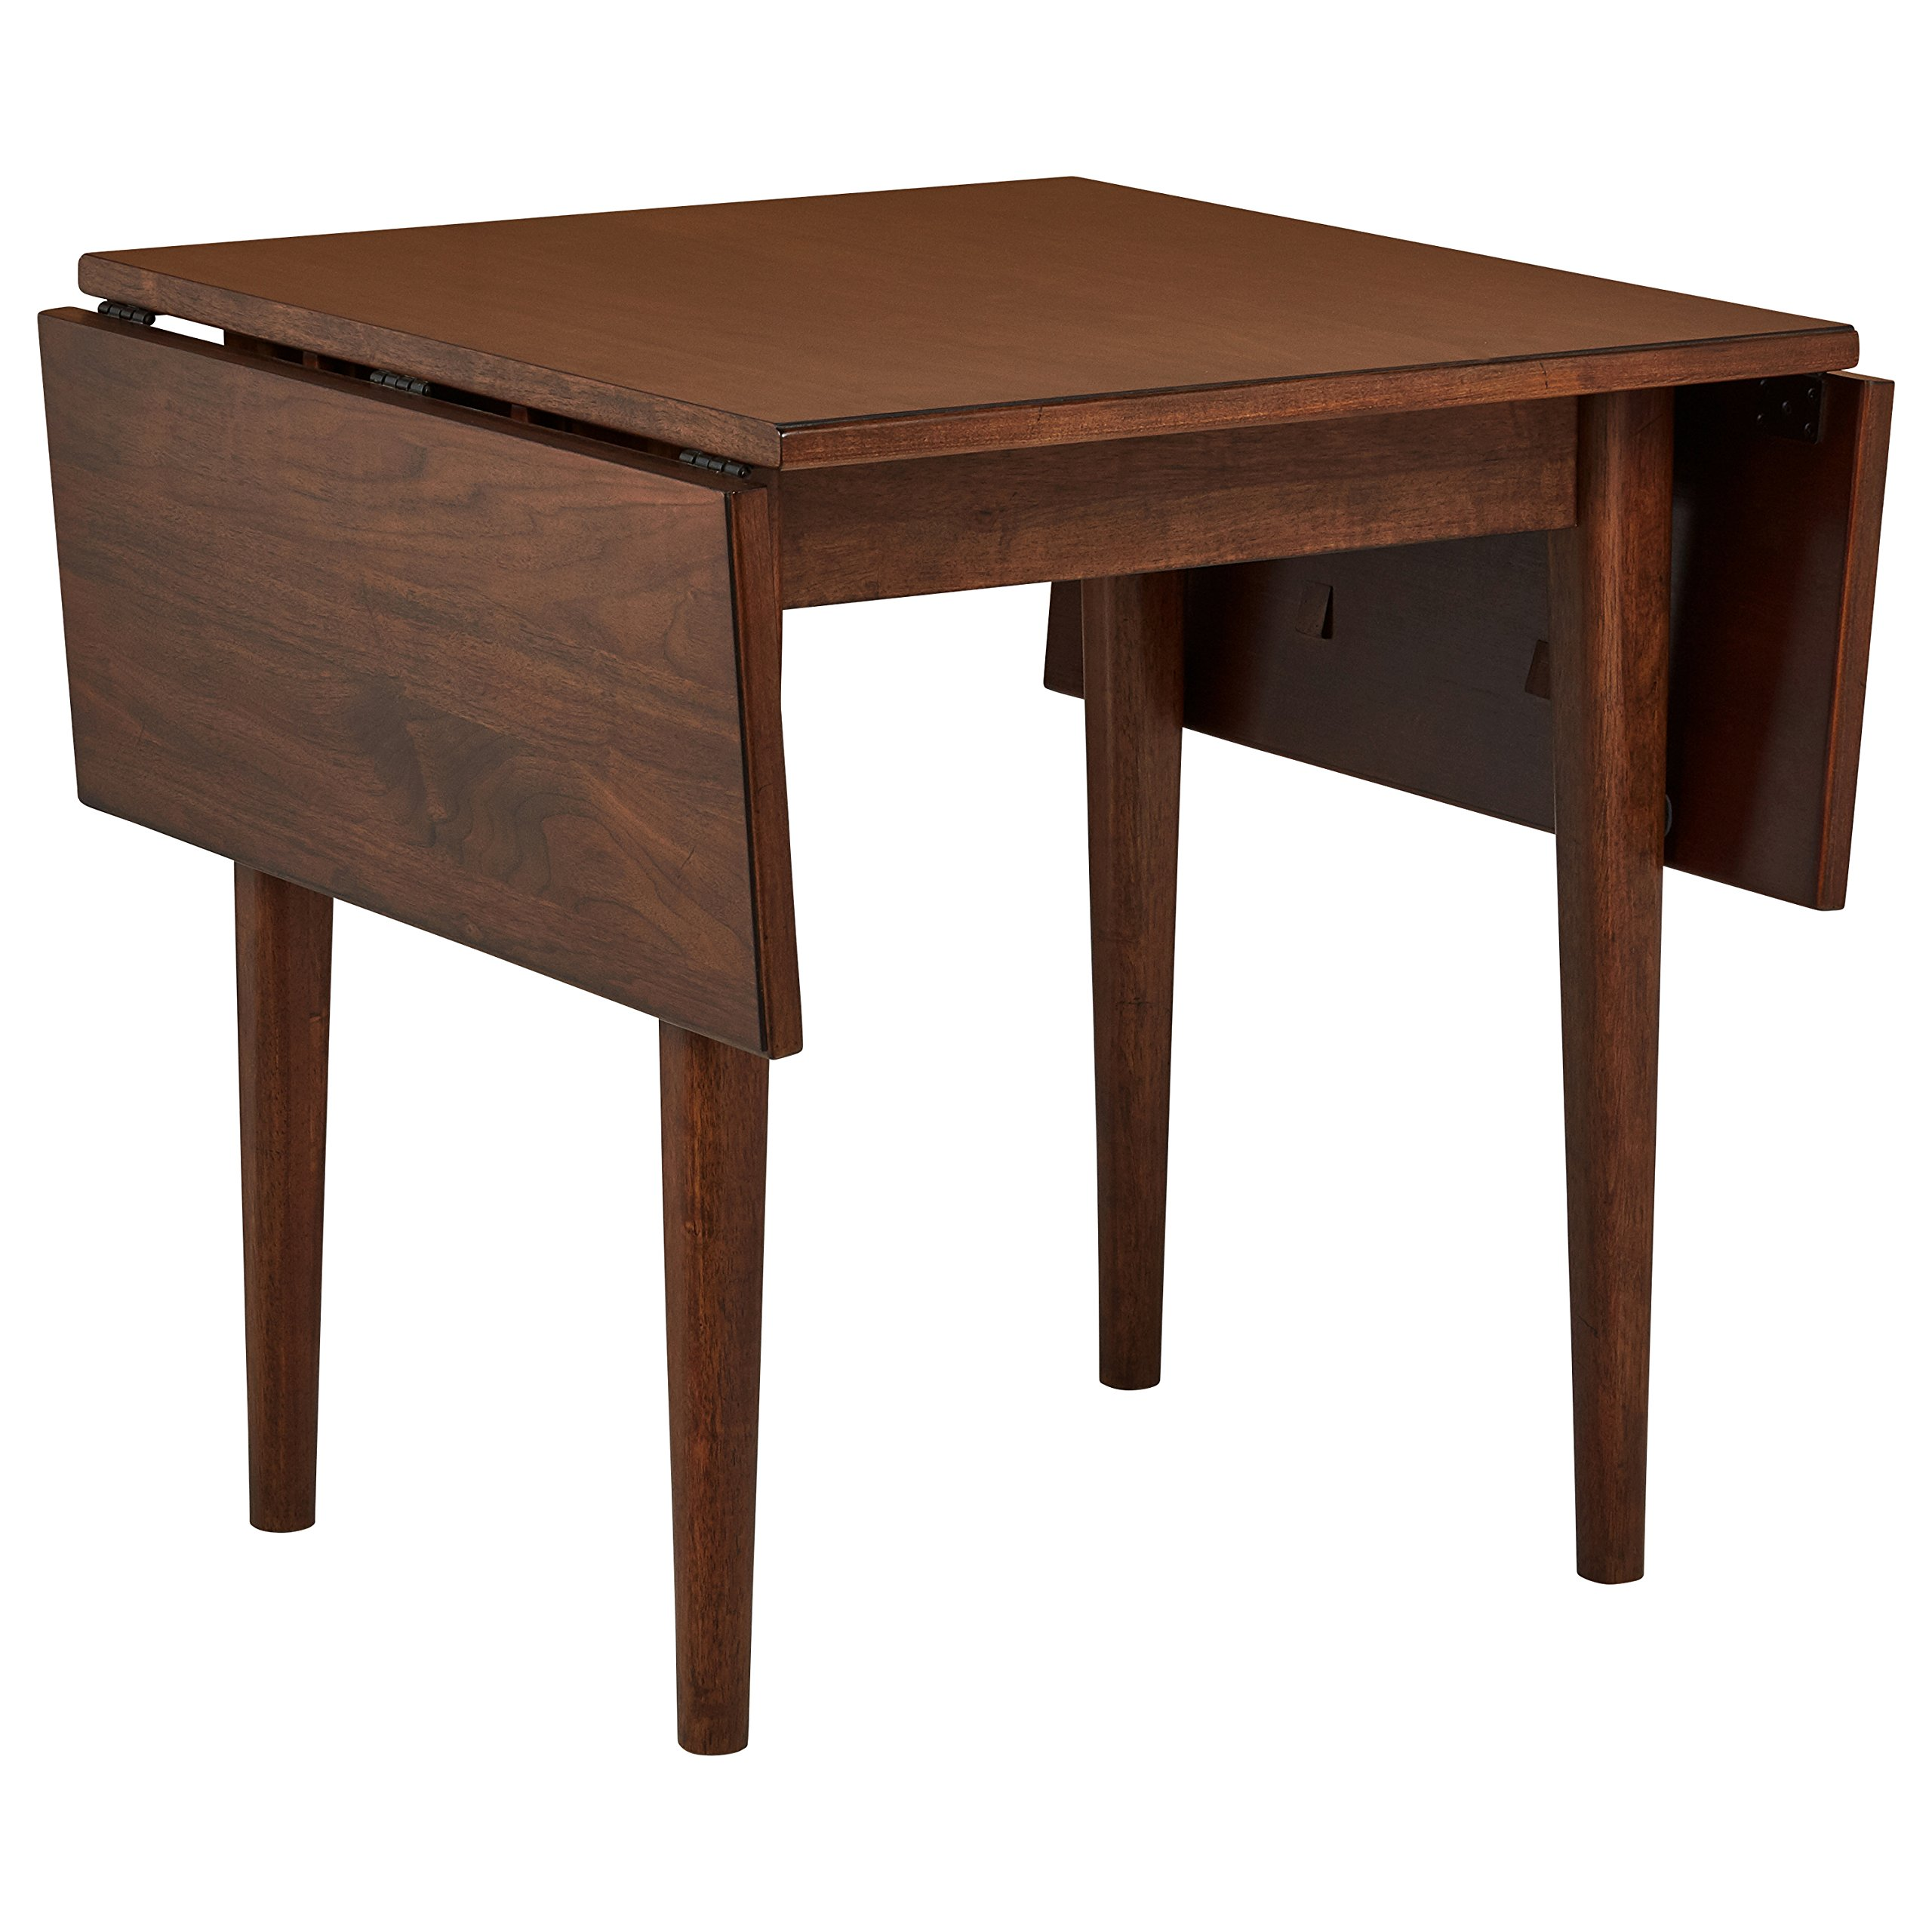 Rivet Federal Mid-Century Modern Drop Leaf Dining Kitchen Table, Walnut Wood by Rivet